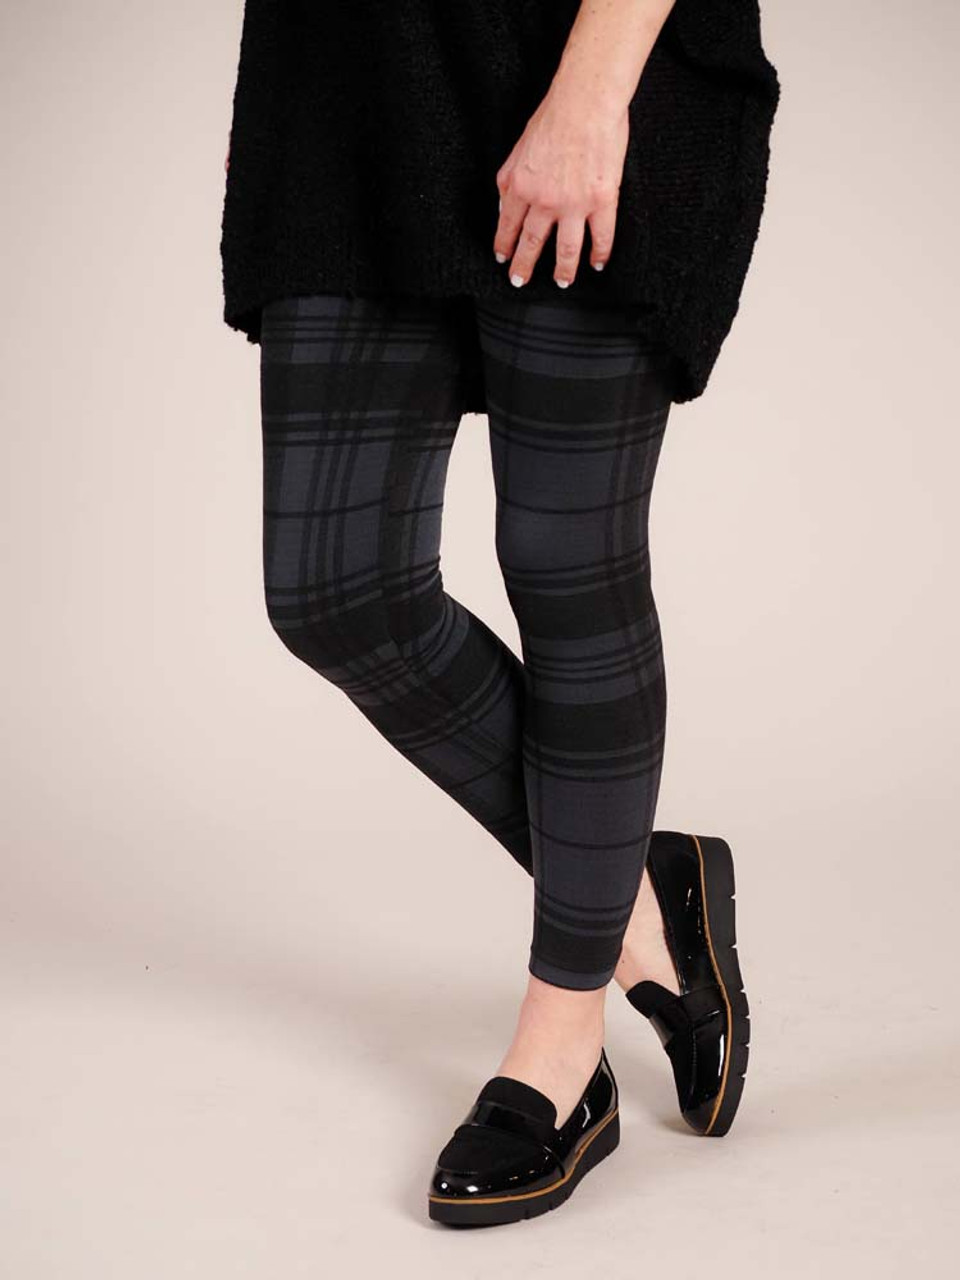 """Gray/Black Plaid Comfortable and versitable fleece-lined leggings, breathable fabric, smooth mid-rise fit, seamless, flattering 4"""" waistband, full length cut with banded ankle"""